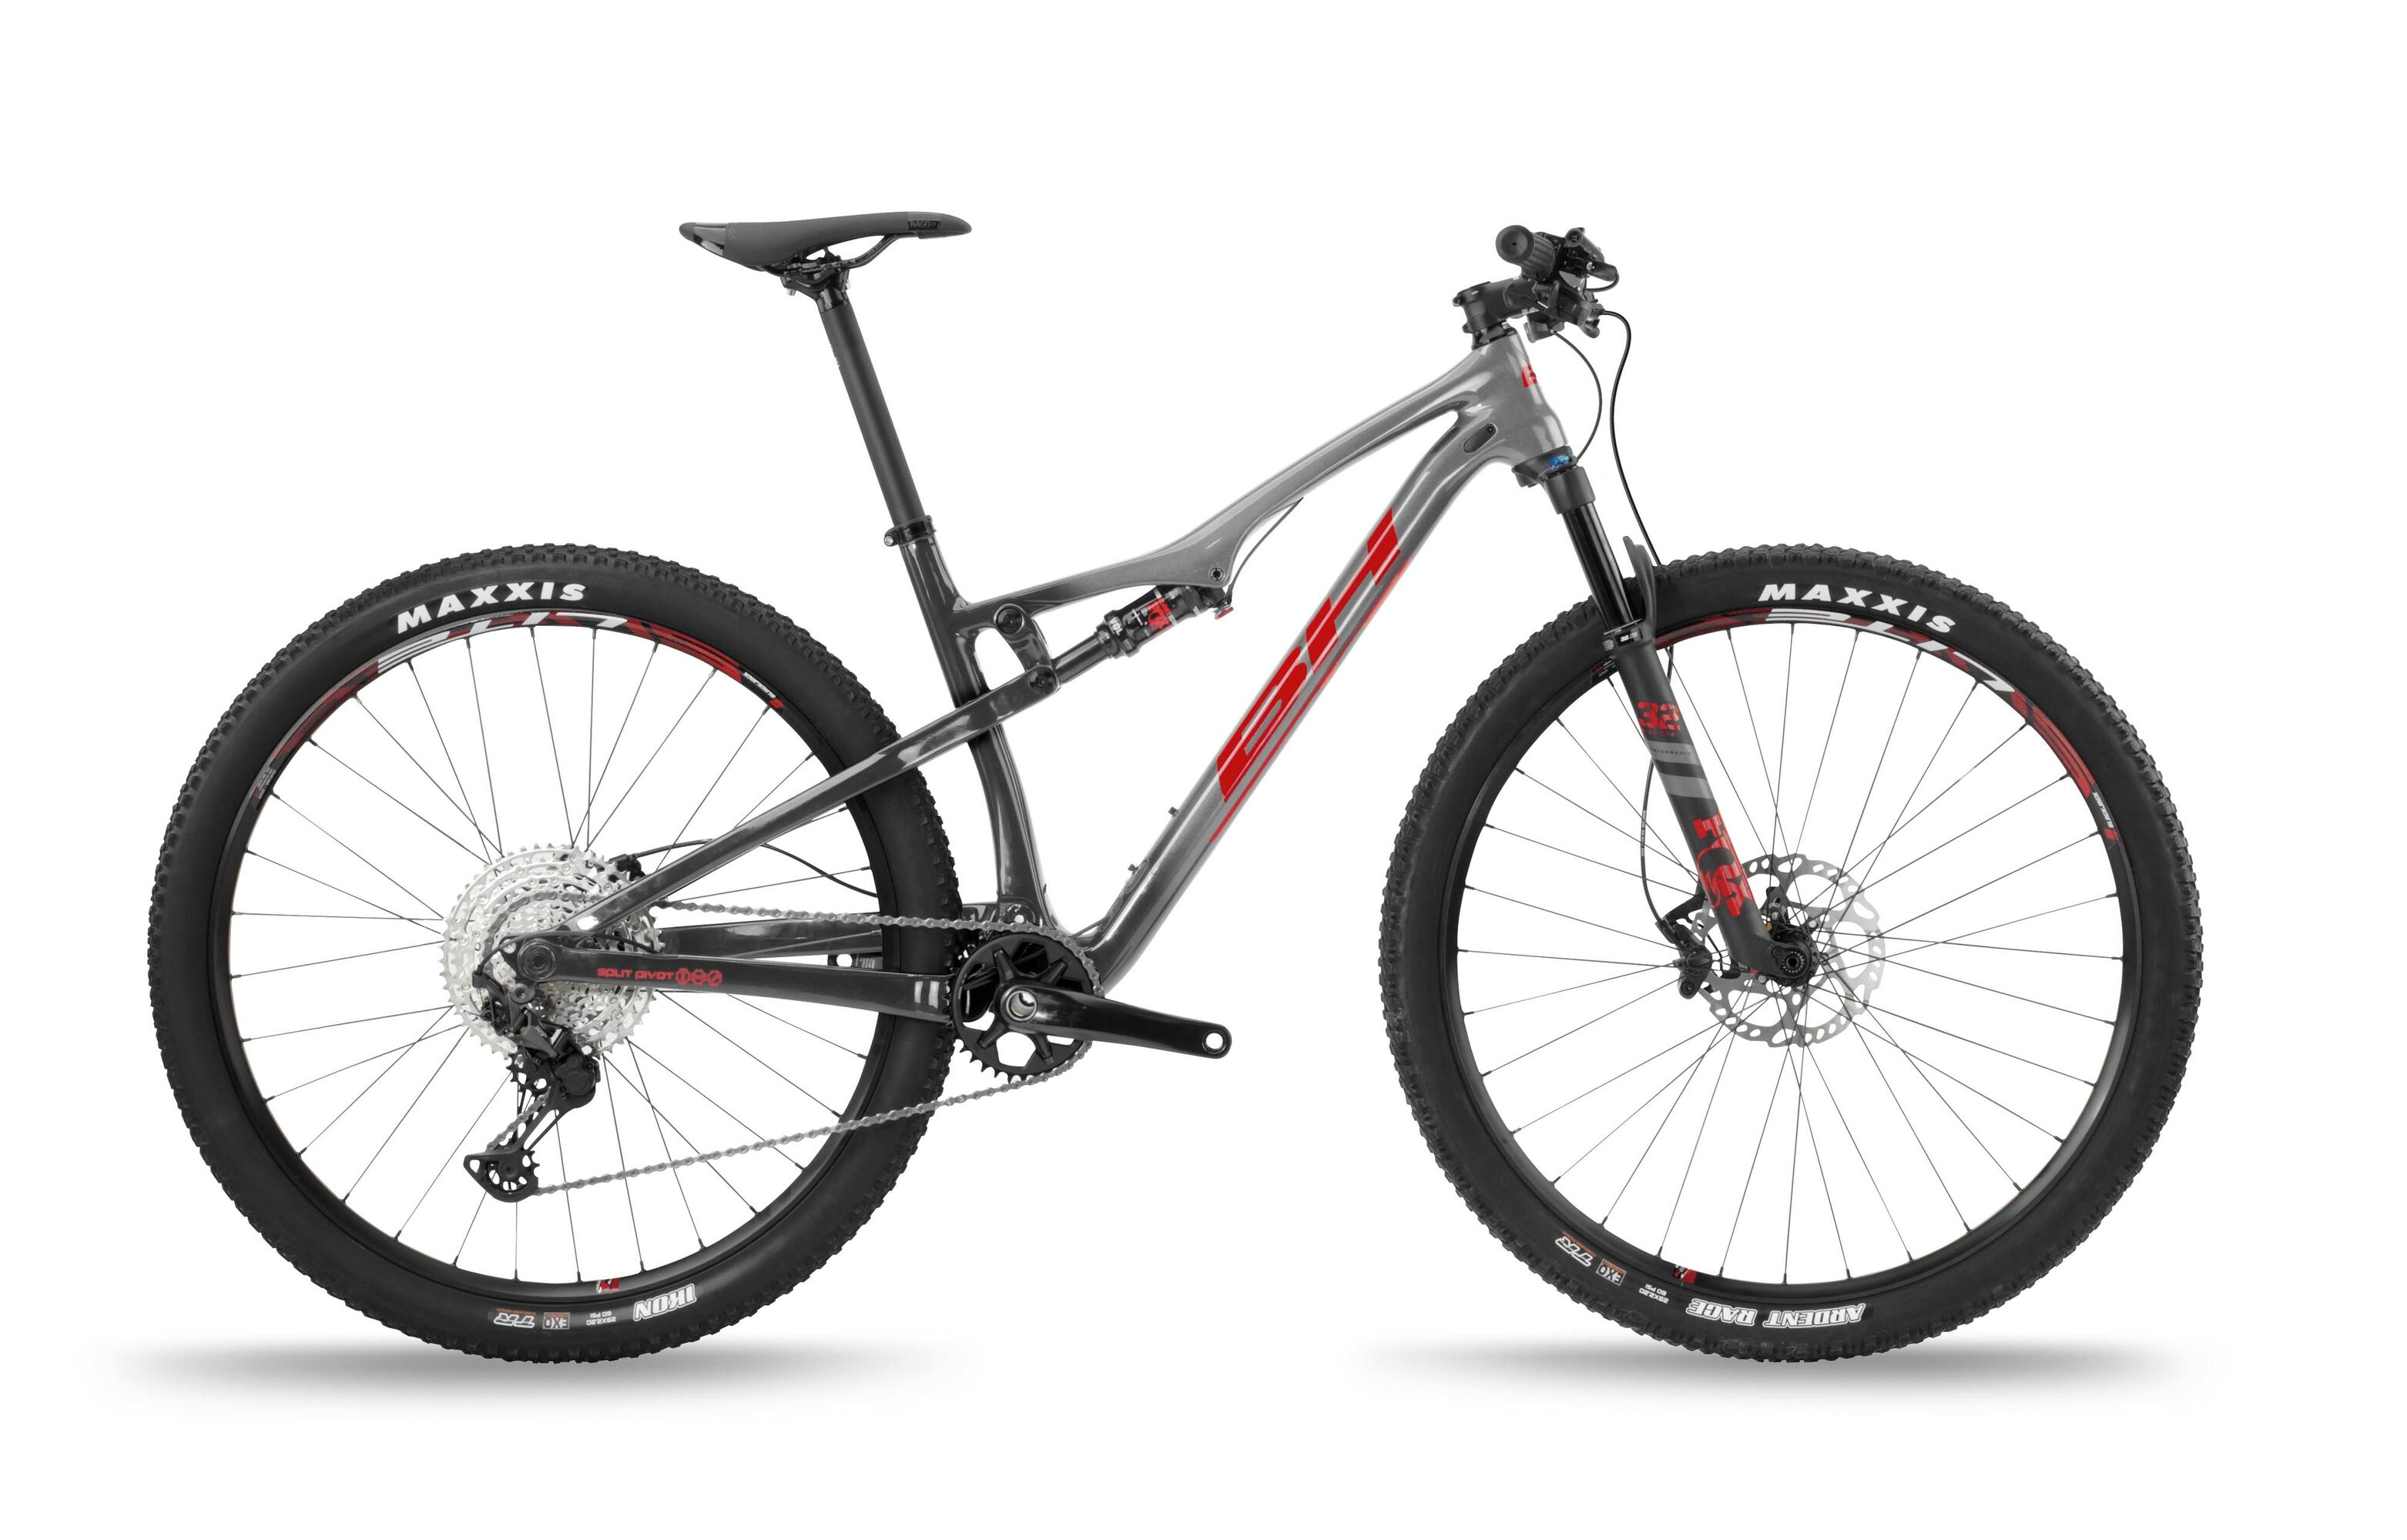 LYNX RACE CARBON RC 6.5 - BH Bikes